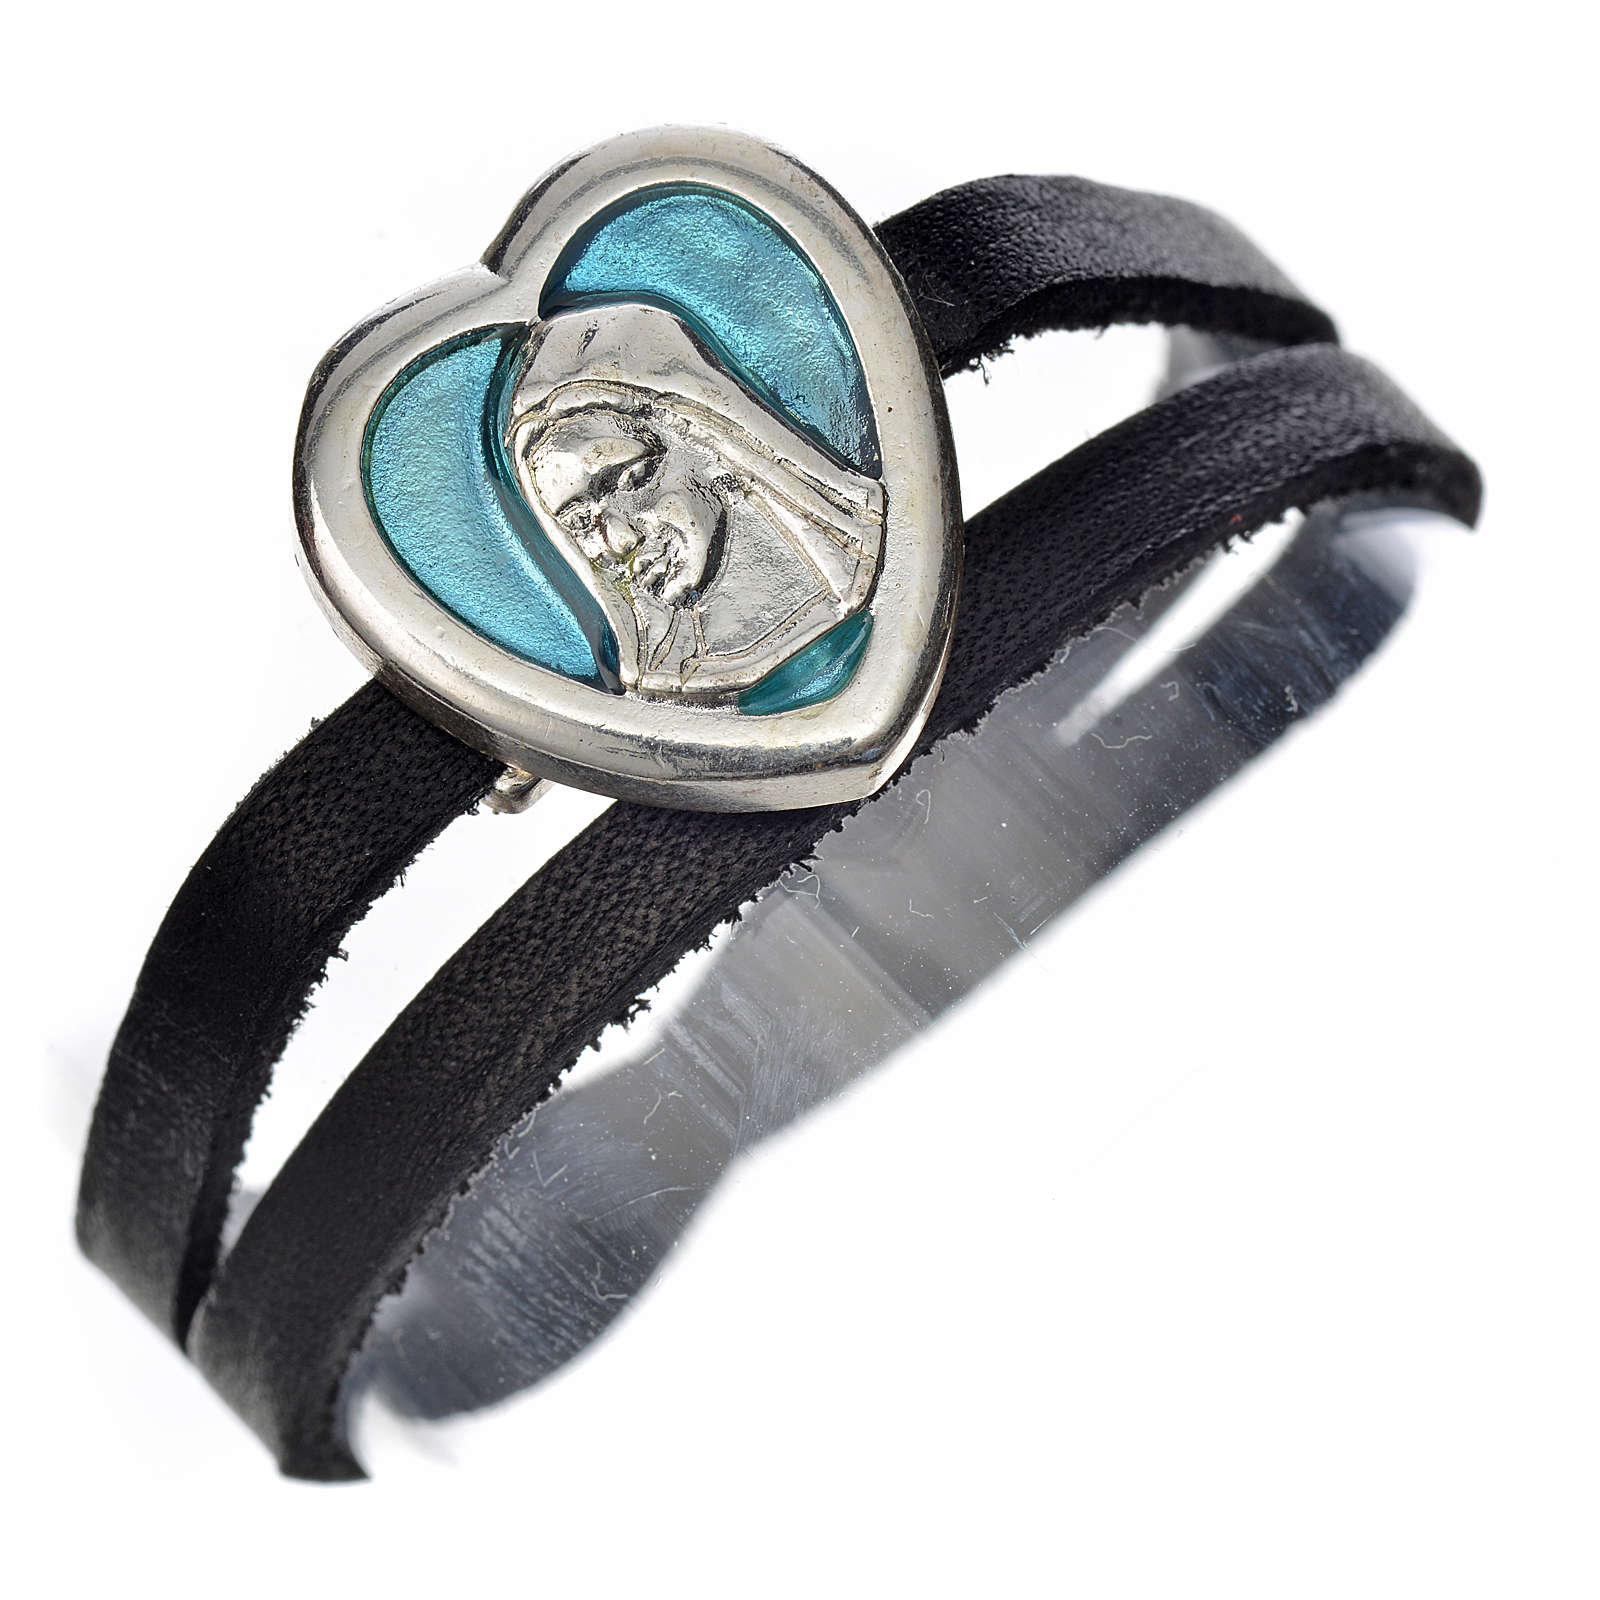 Bracelet in black leather with Virgin Mary pendant blue enamel 4